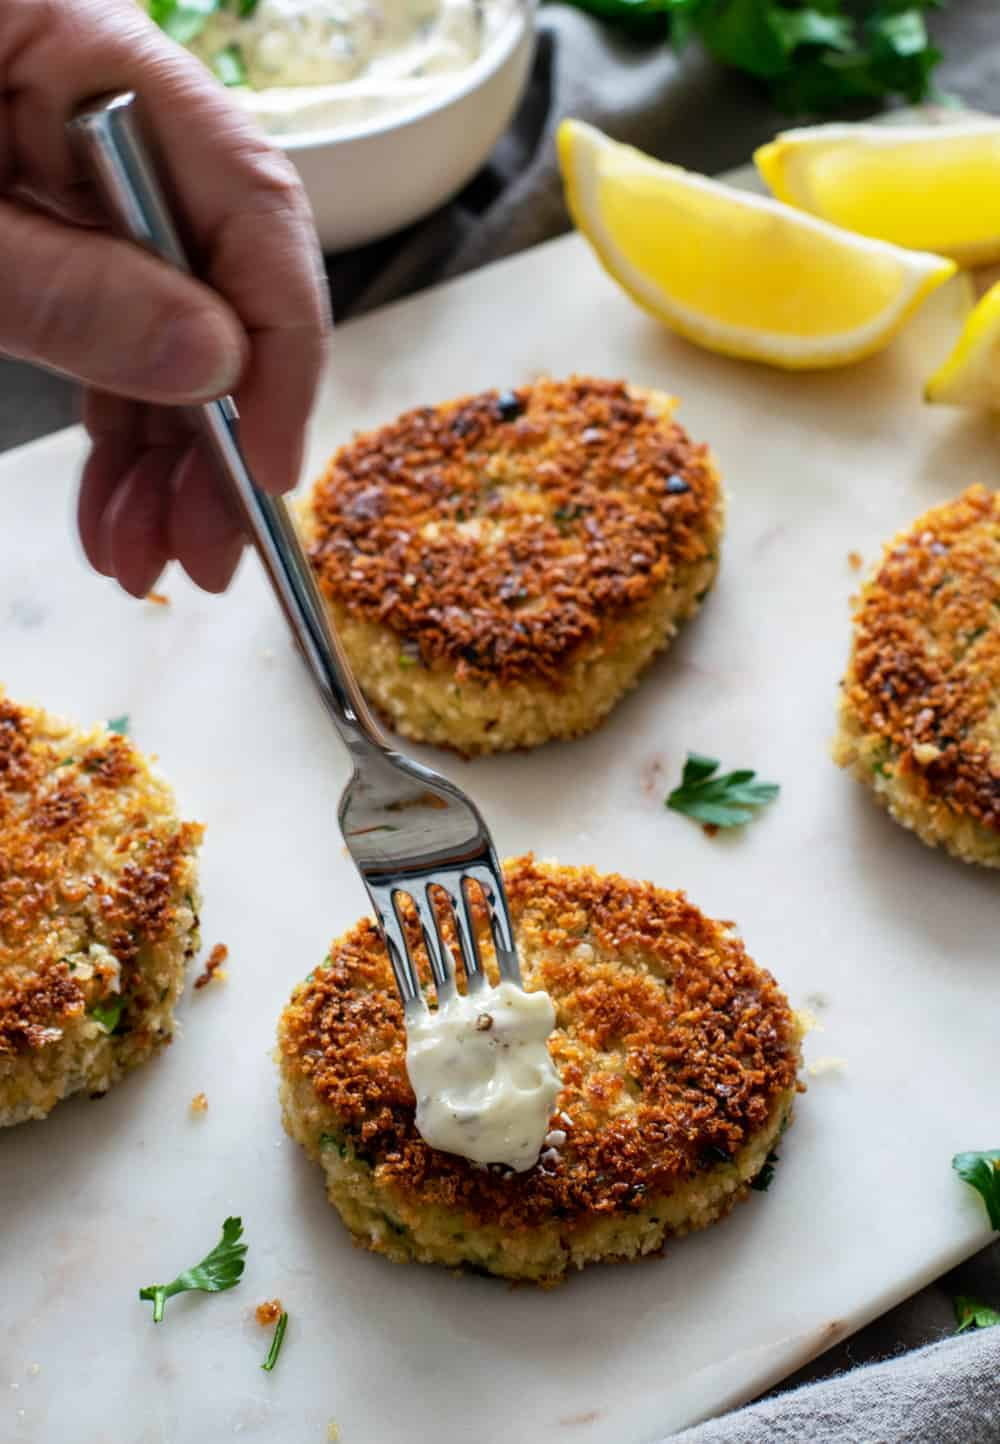 bite of easy homemade tartar sauce on a crispy crab cake